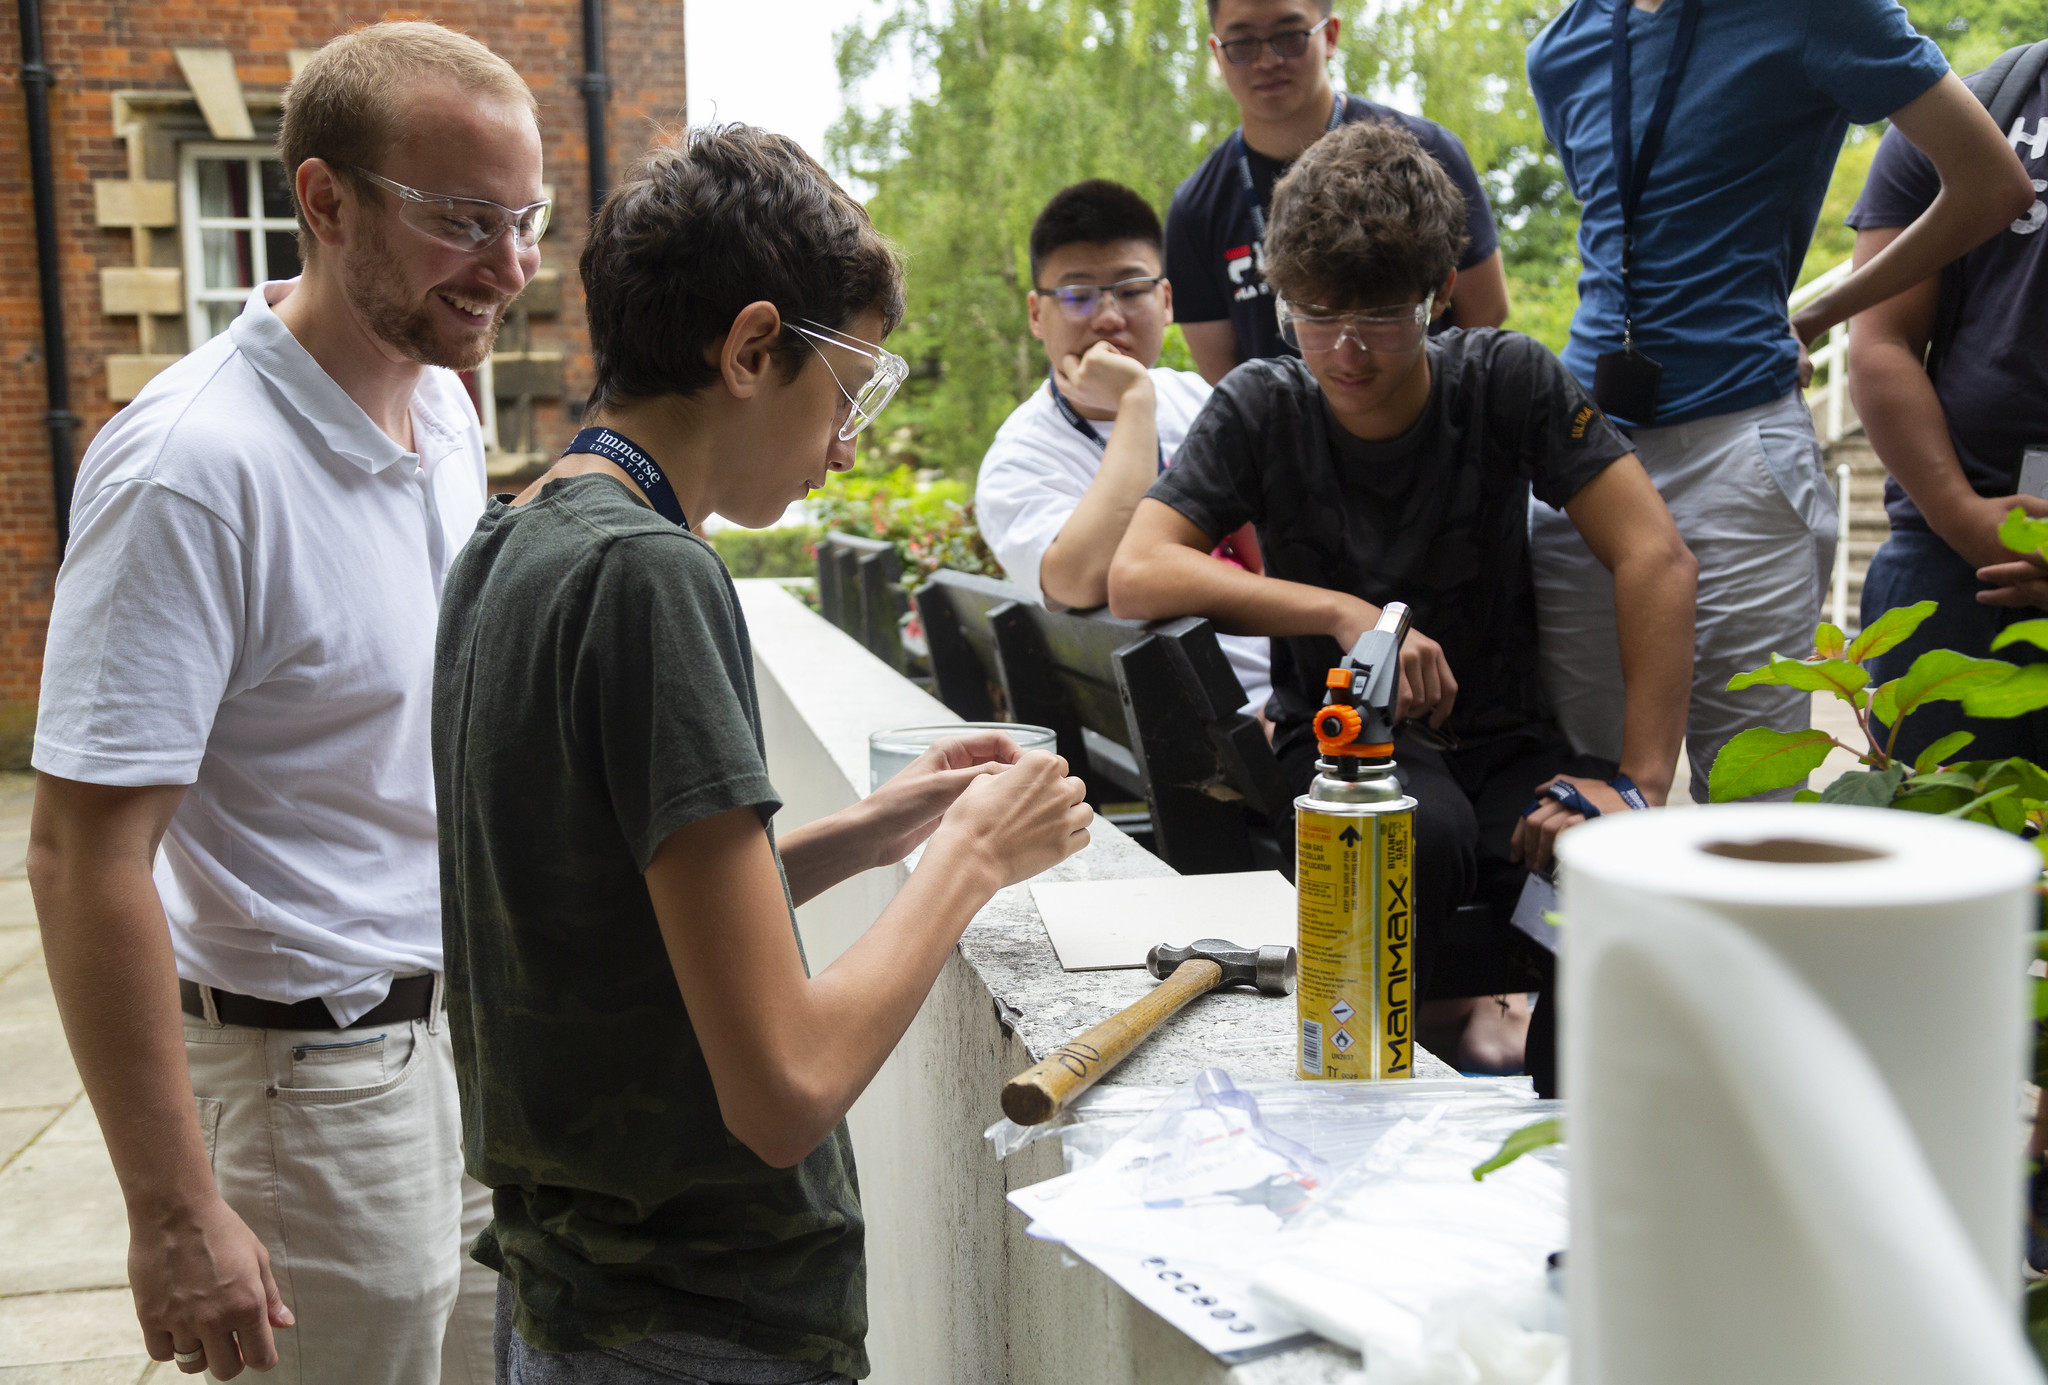 Engineering Summer School in Cambridge